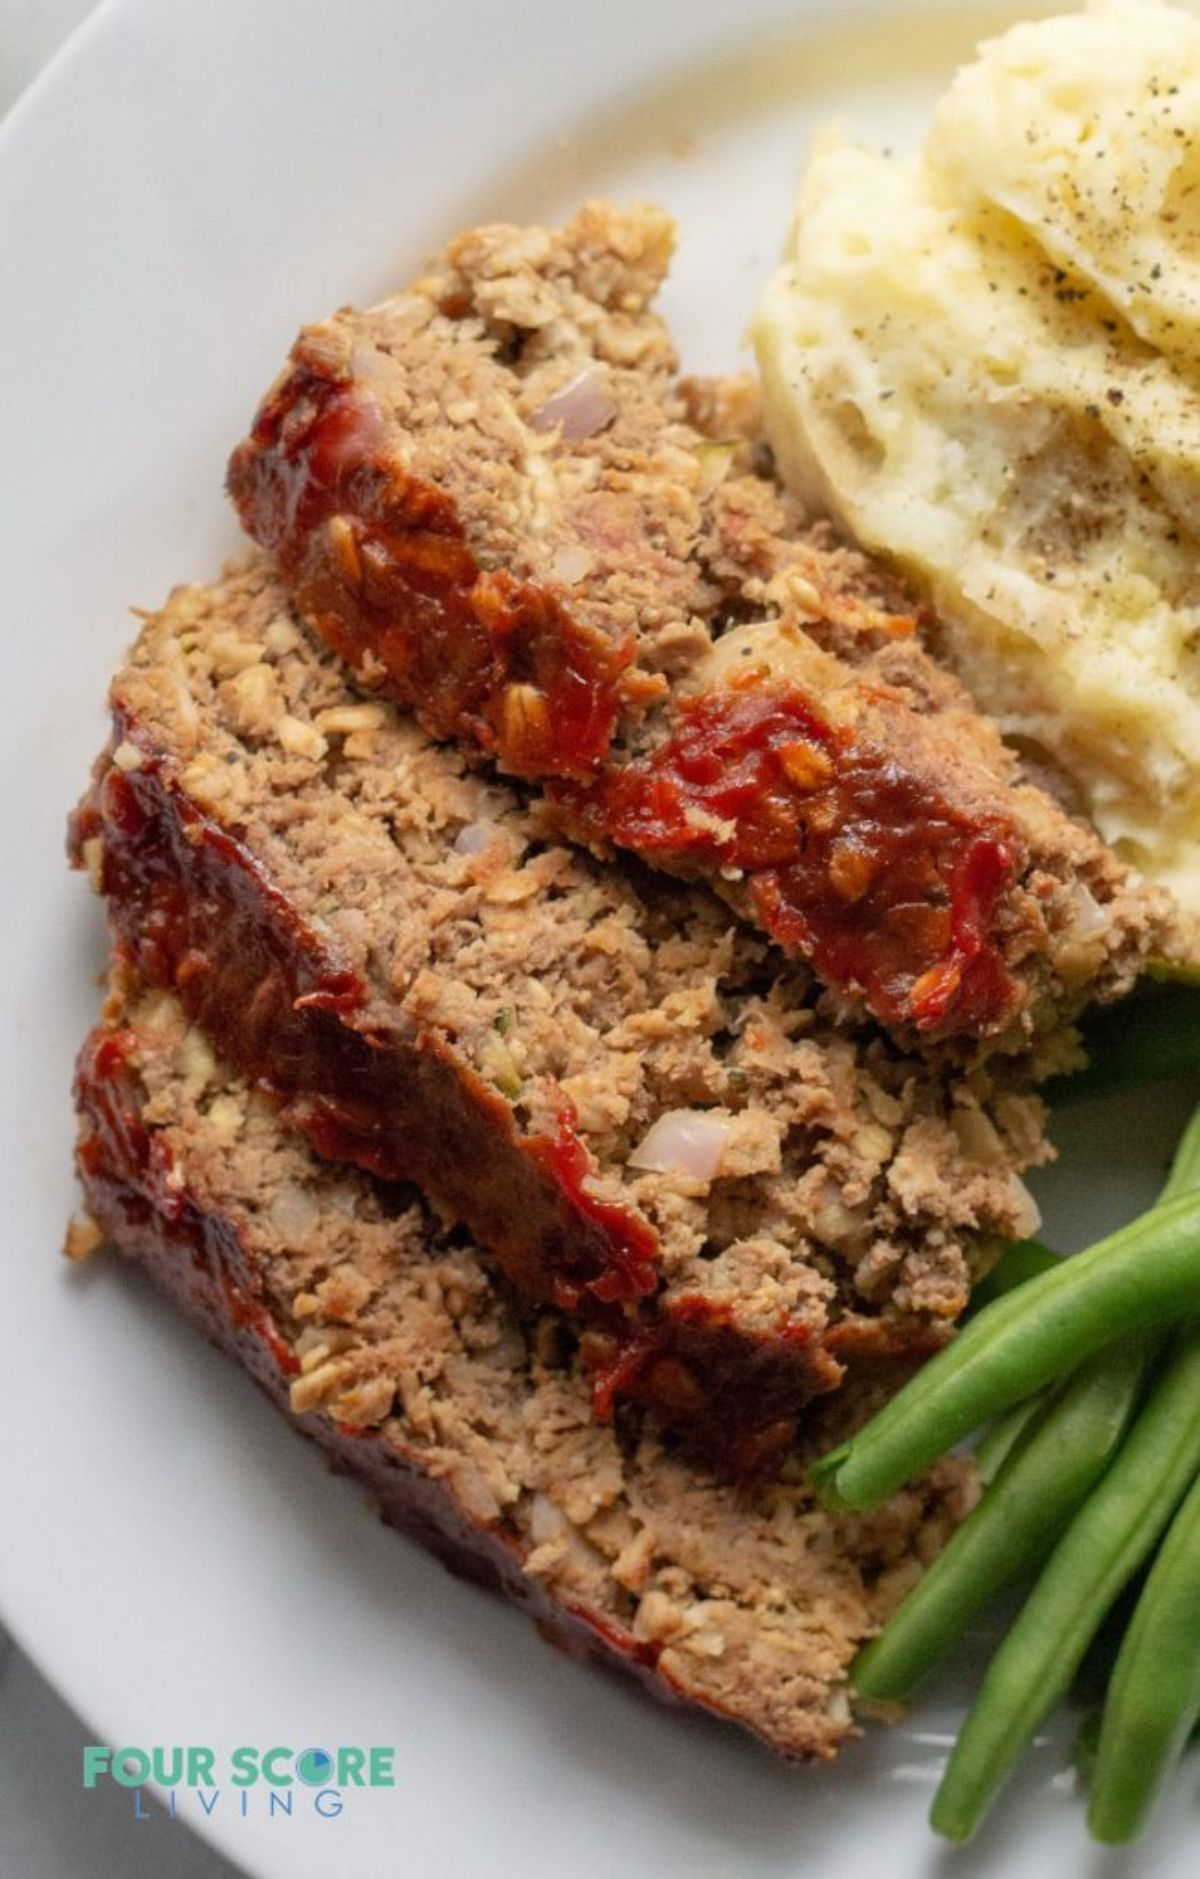 A white plate with slices of meatloaf, green beans and mash on it